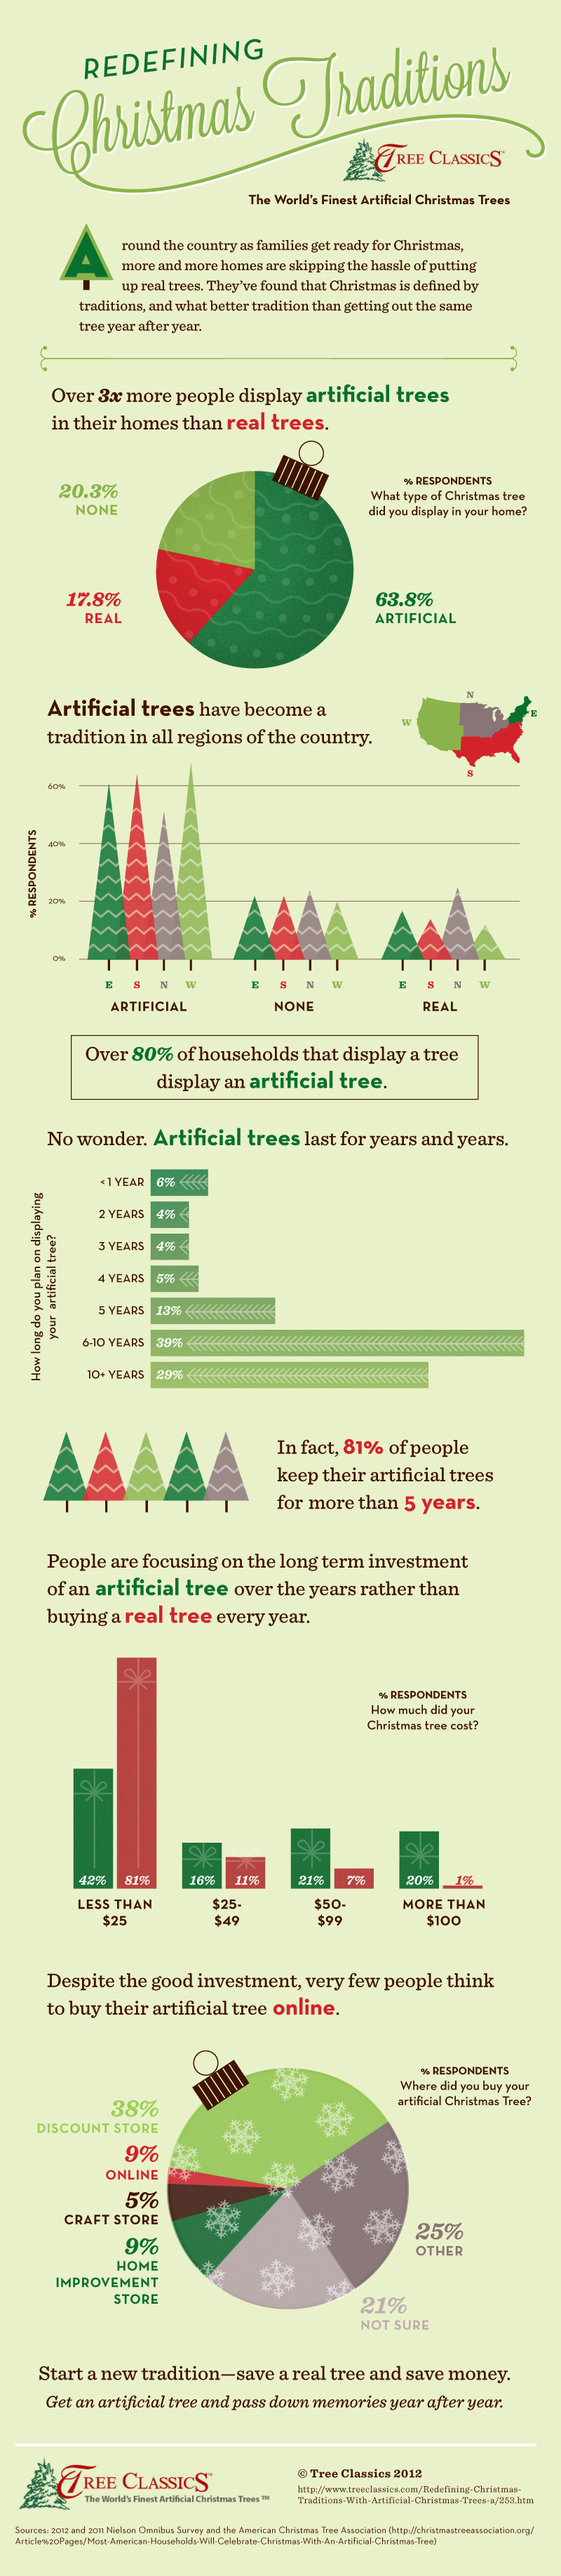 Real Vs Artificial Christmas Tree Statistics Infographic Redefining Christmas Traditions Christmas Infographic Christmas Traditions Traditional Christmas Tree